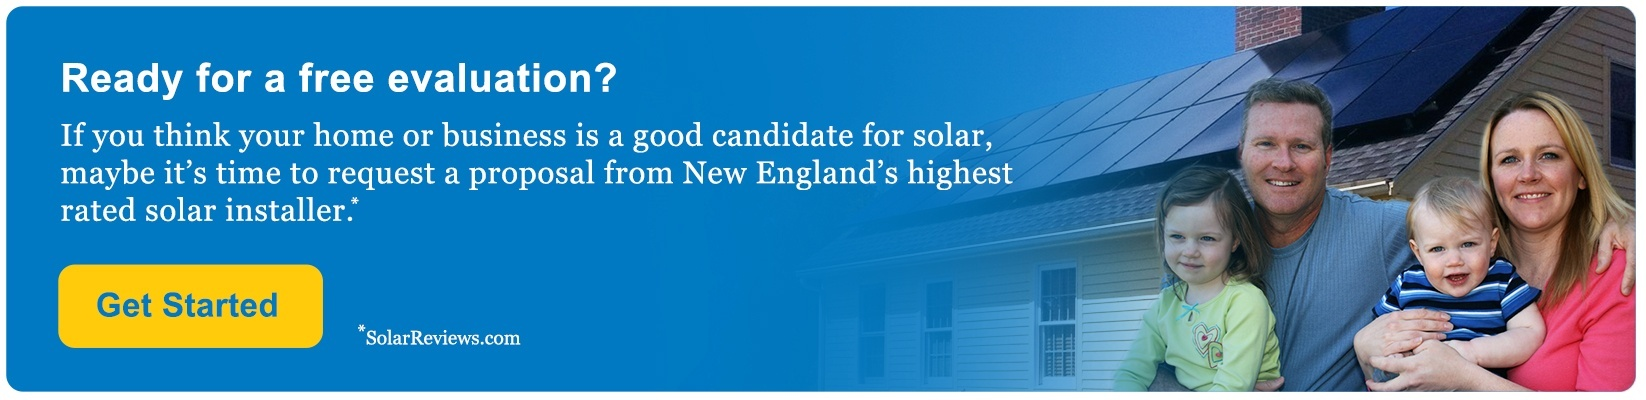 Ready for a free evaluation? If you think your home or business is a good candidate for solar, maybe it's time to request a proposal from New England's highest rated solar installer.